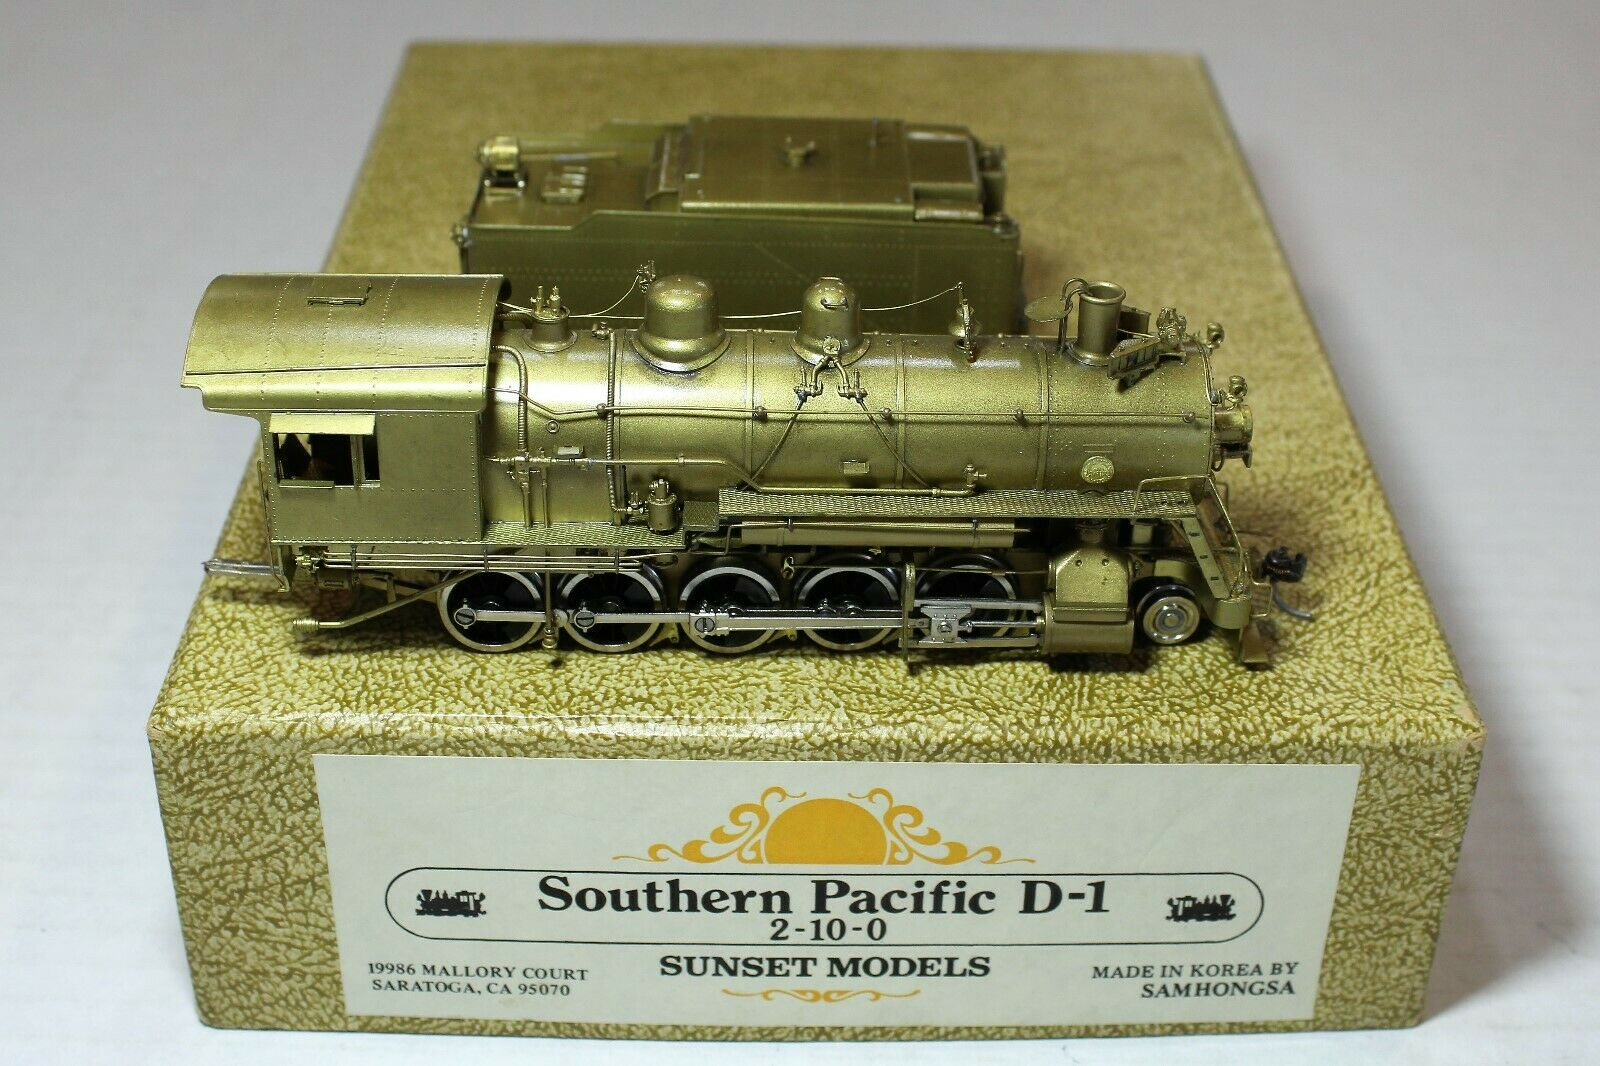 Sunset Models Brass HO Scale Southern Pacific SP 2-10-0 D-1 Steam Locomotive